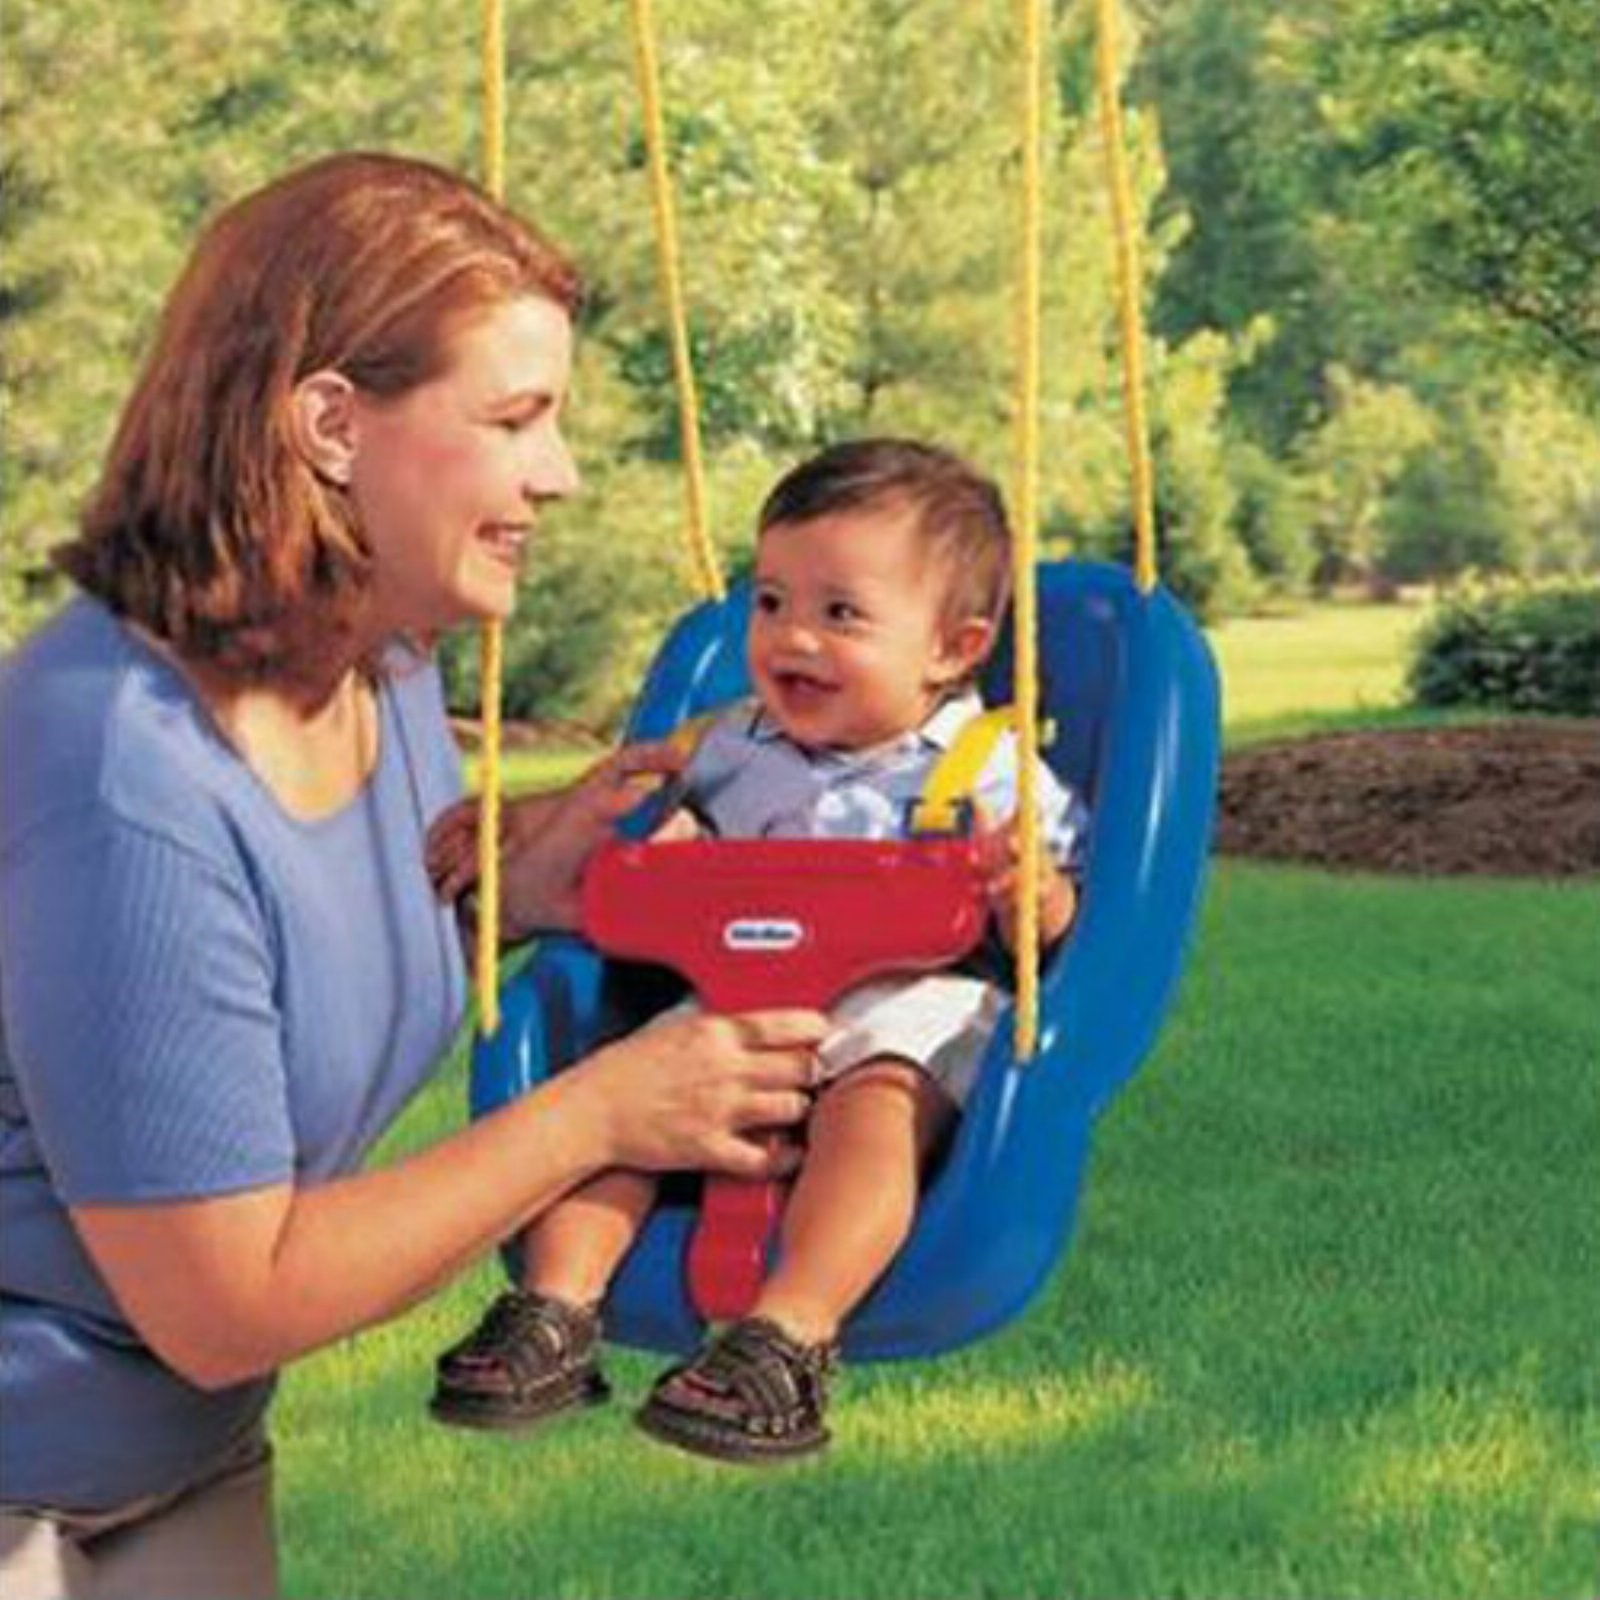 2-in-1 Snug 'n Secure Swing - Blue